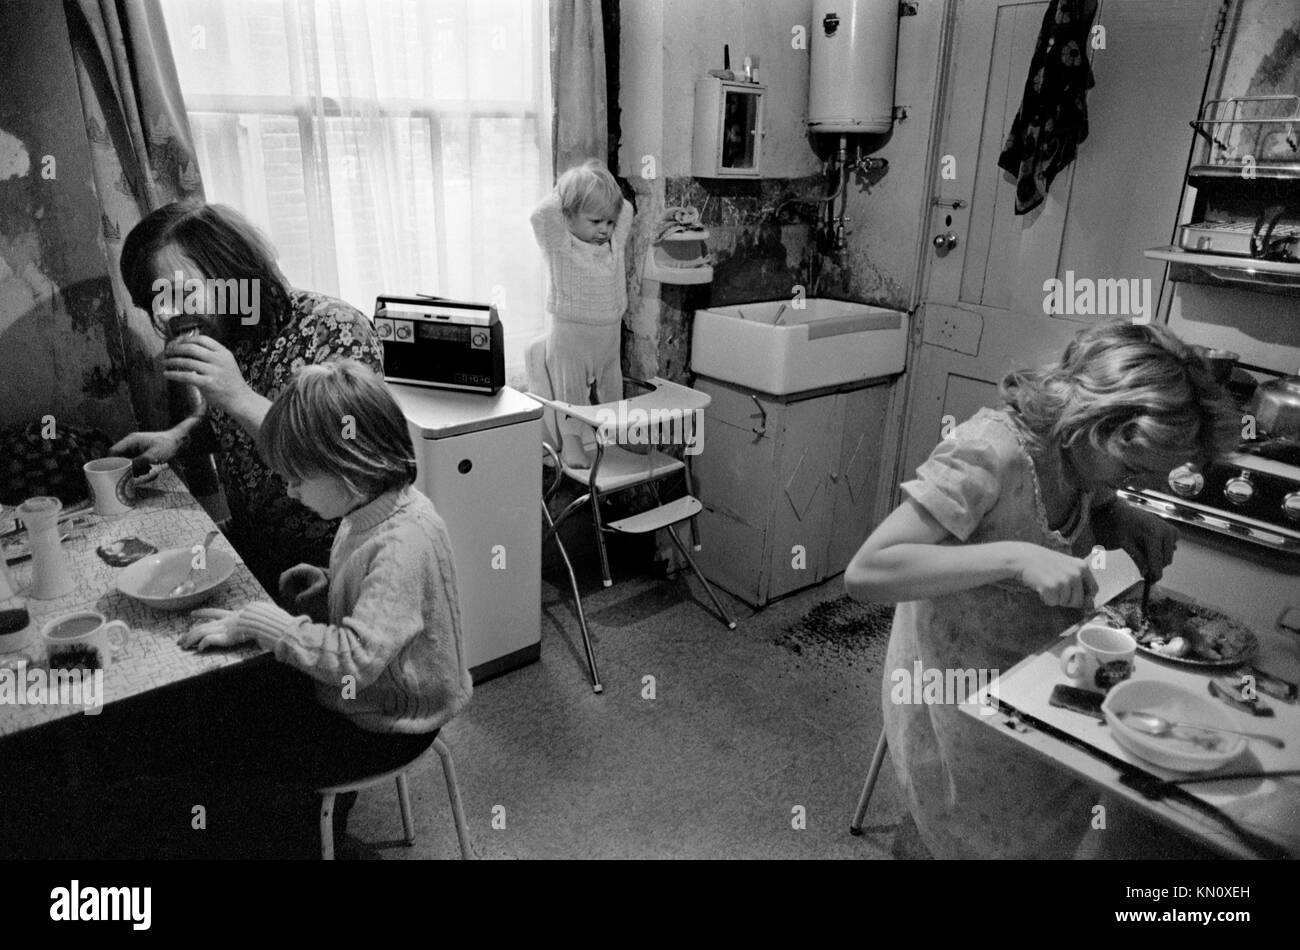 Poverty uk 1970s slum housing , kitchen doubles as bathroom. Family eating together. Ascot gas water heater on the - Stock Image